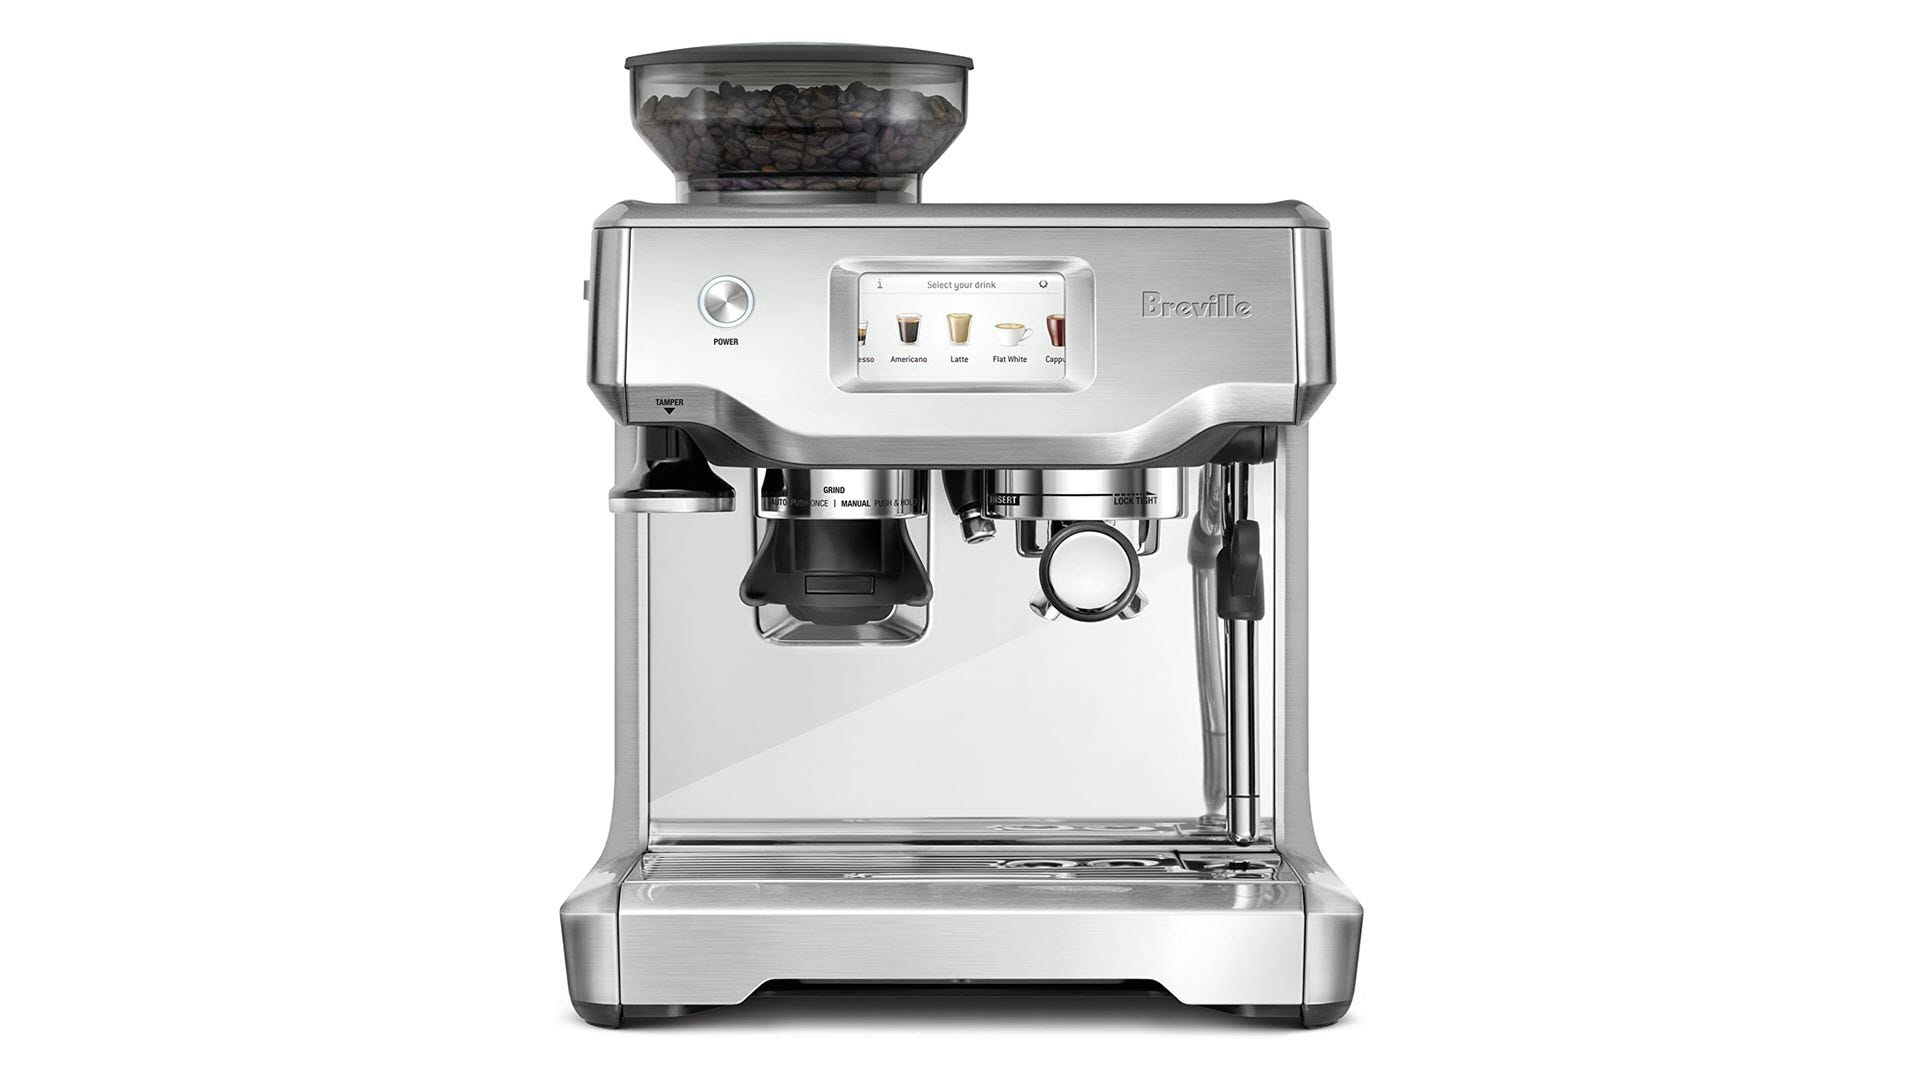 A Breville Espresso machine with a touchscreen and bean hopper.